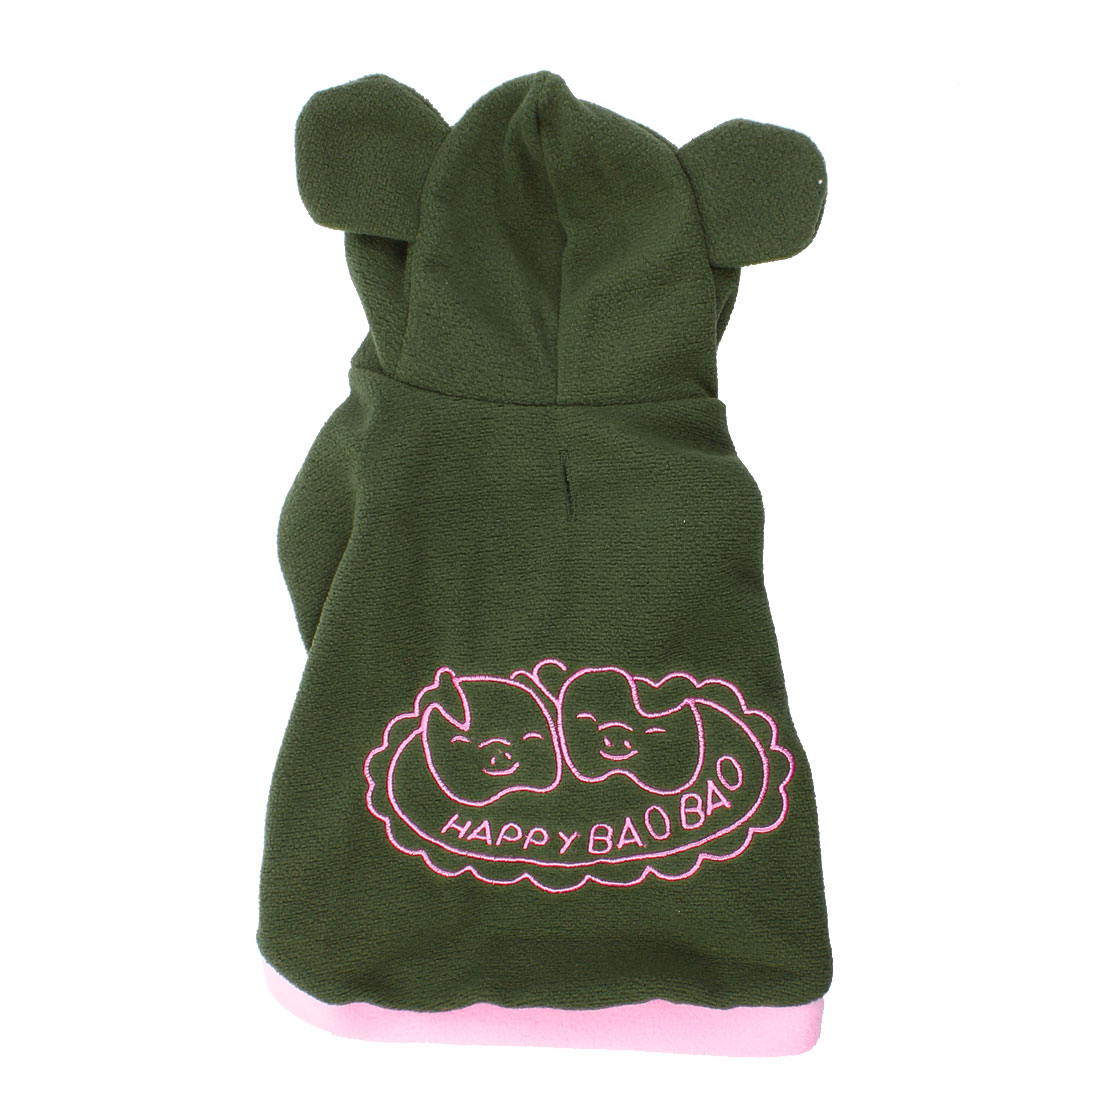 Single Breasted Hoodie Pig Print Pet Dog Cat Coat Apparel Costume Army Green S